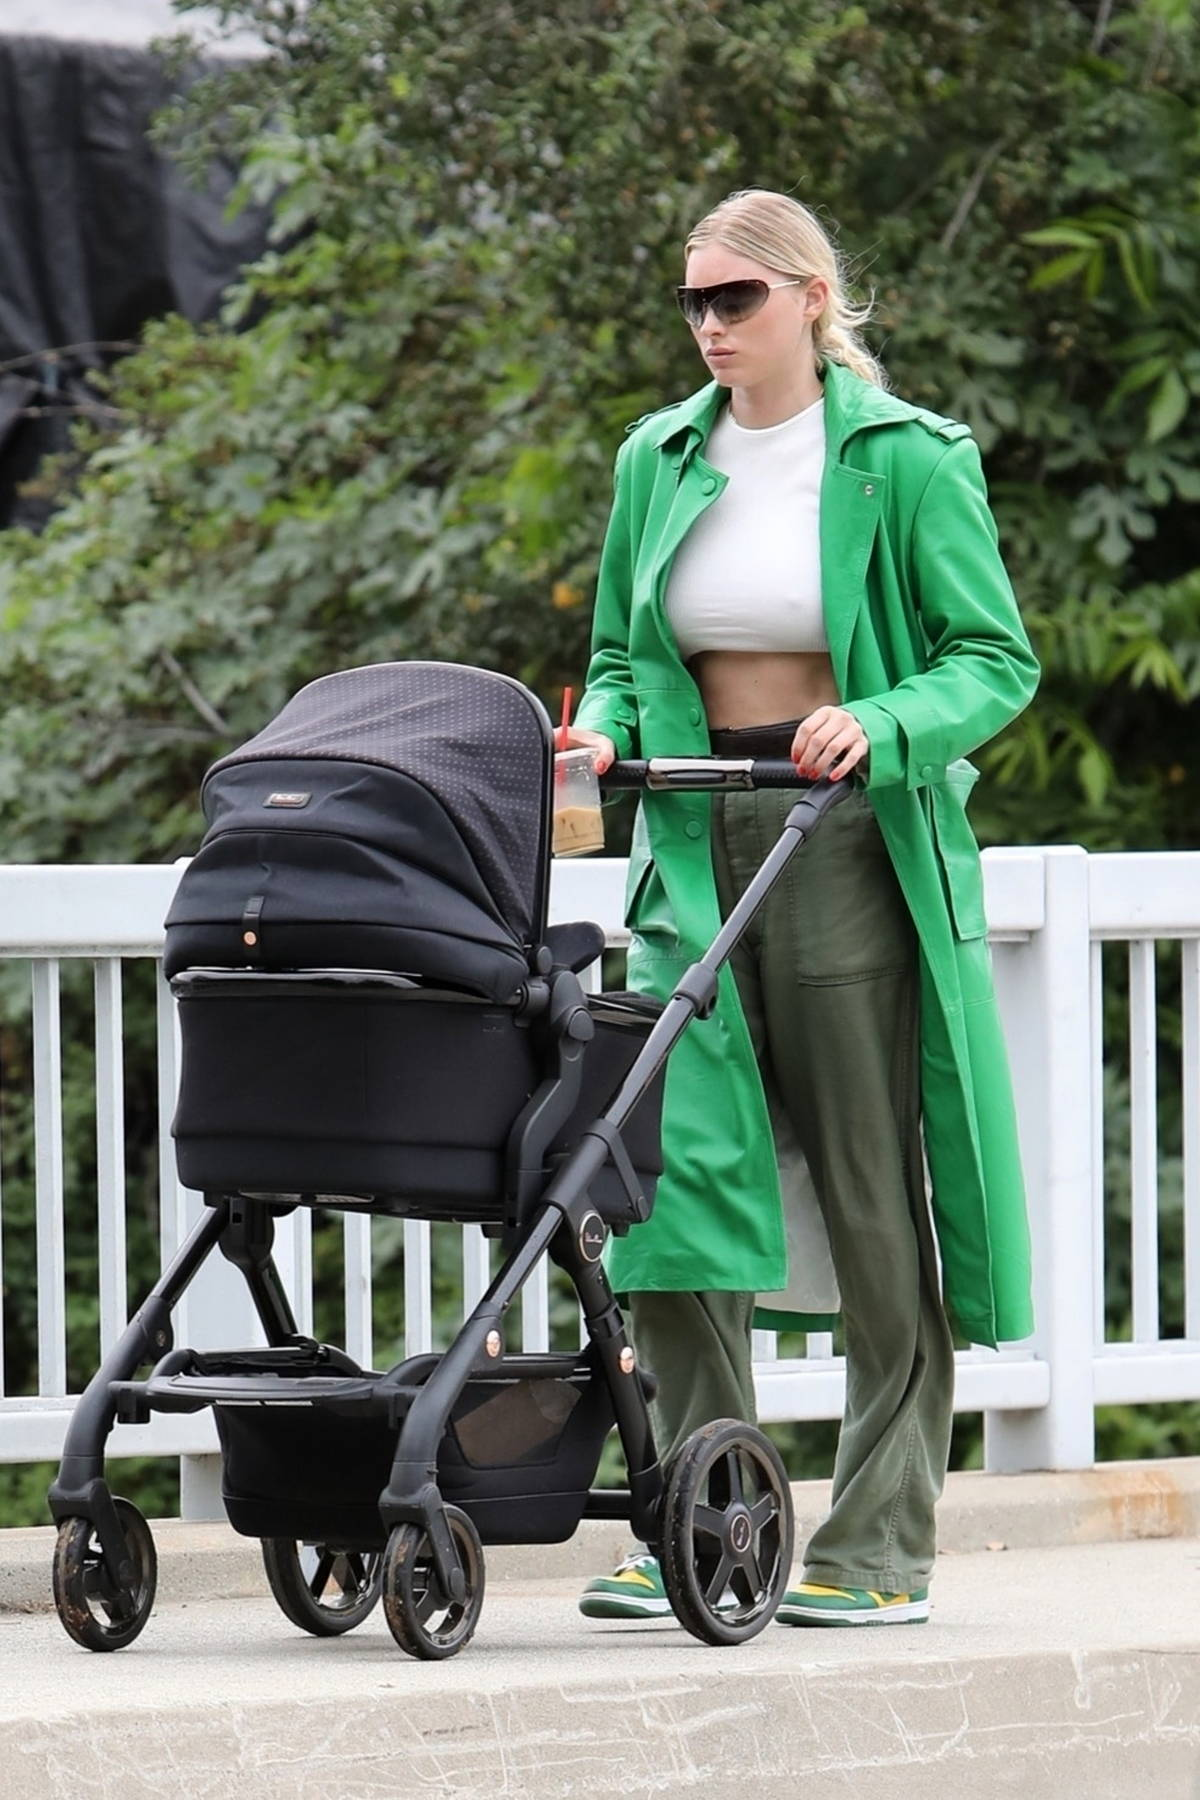 Elsa Hosk wears a midriff baring crop top and a green trench coat during a coffee run with her baby daughter in Los Angeles